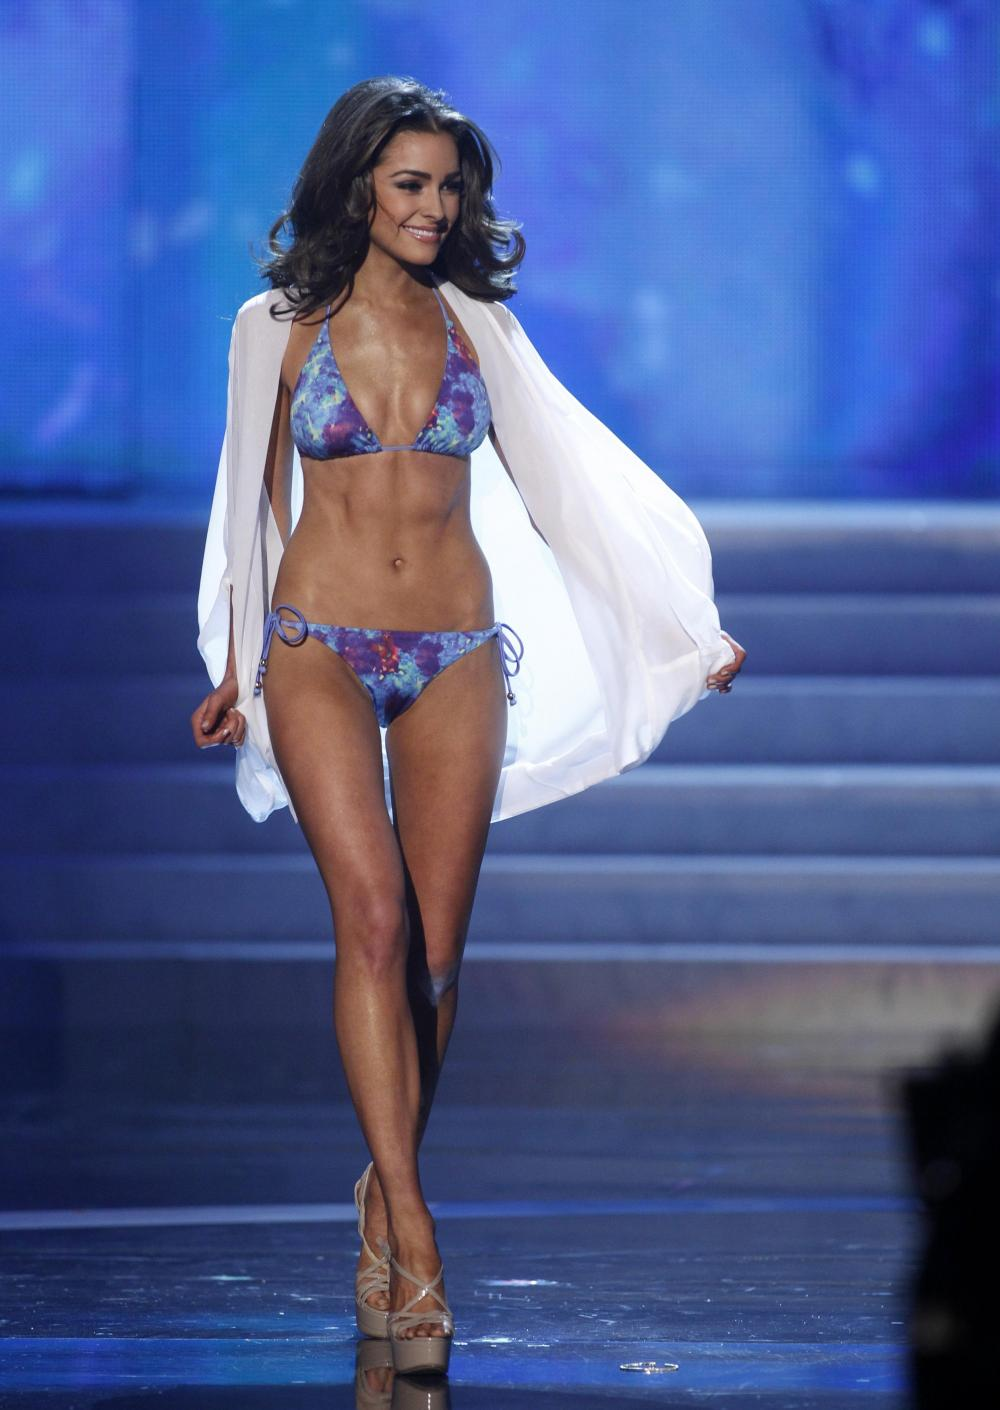 Miss Universe 2012 Winner Usa Olivia Culpo Philippines Lingeri Sexsi Cd Mutiara Photo Reuters Competes In Swimsuit Portion Of Pageant Las Vegas